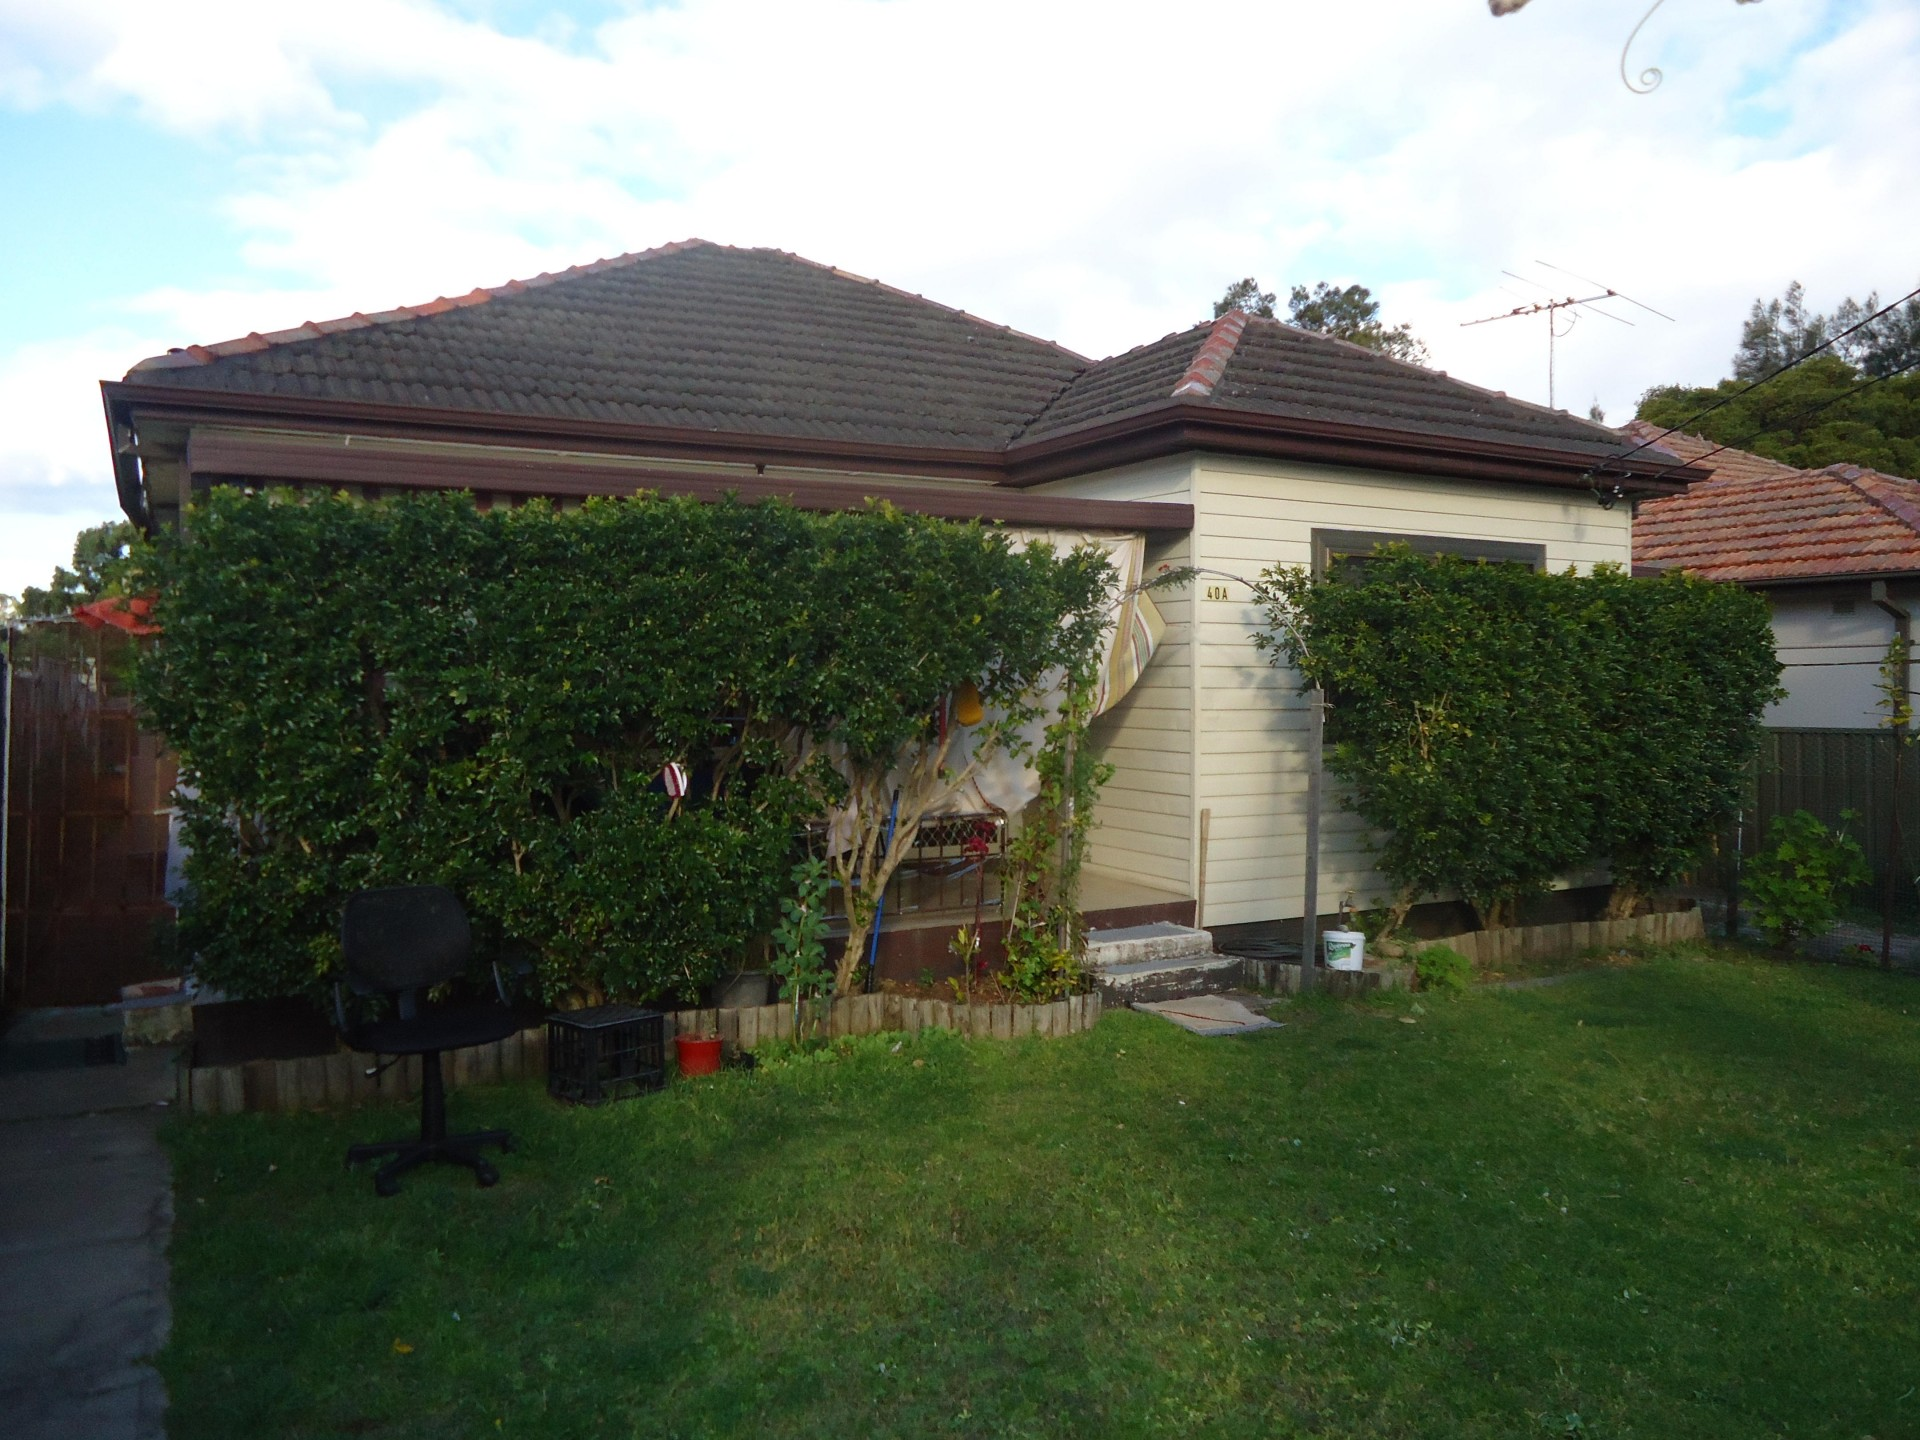 Conveniently located 2 bedroom Granny Flat!